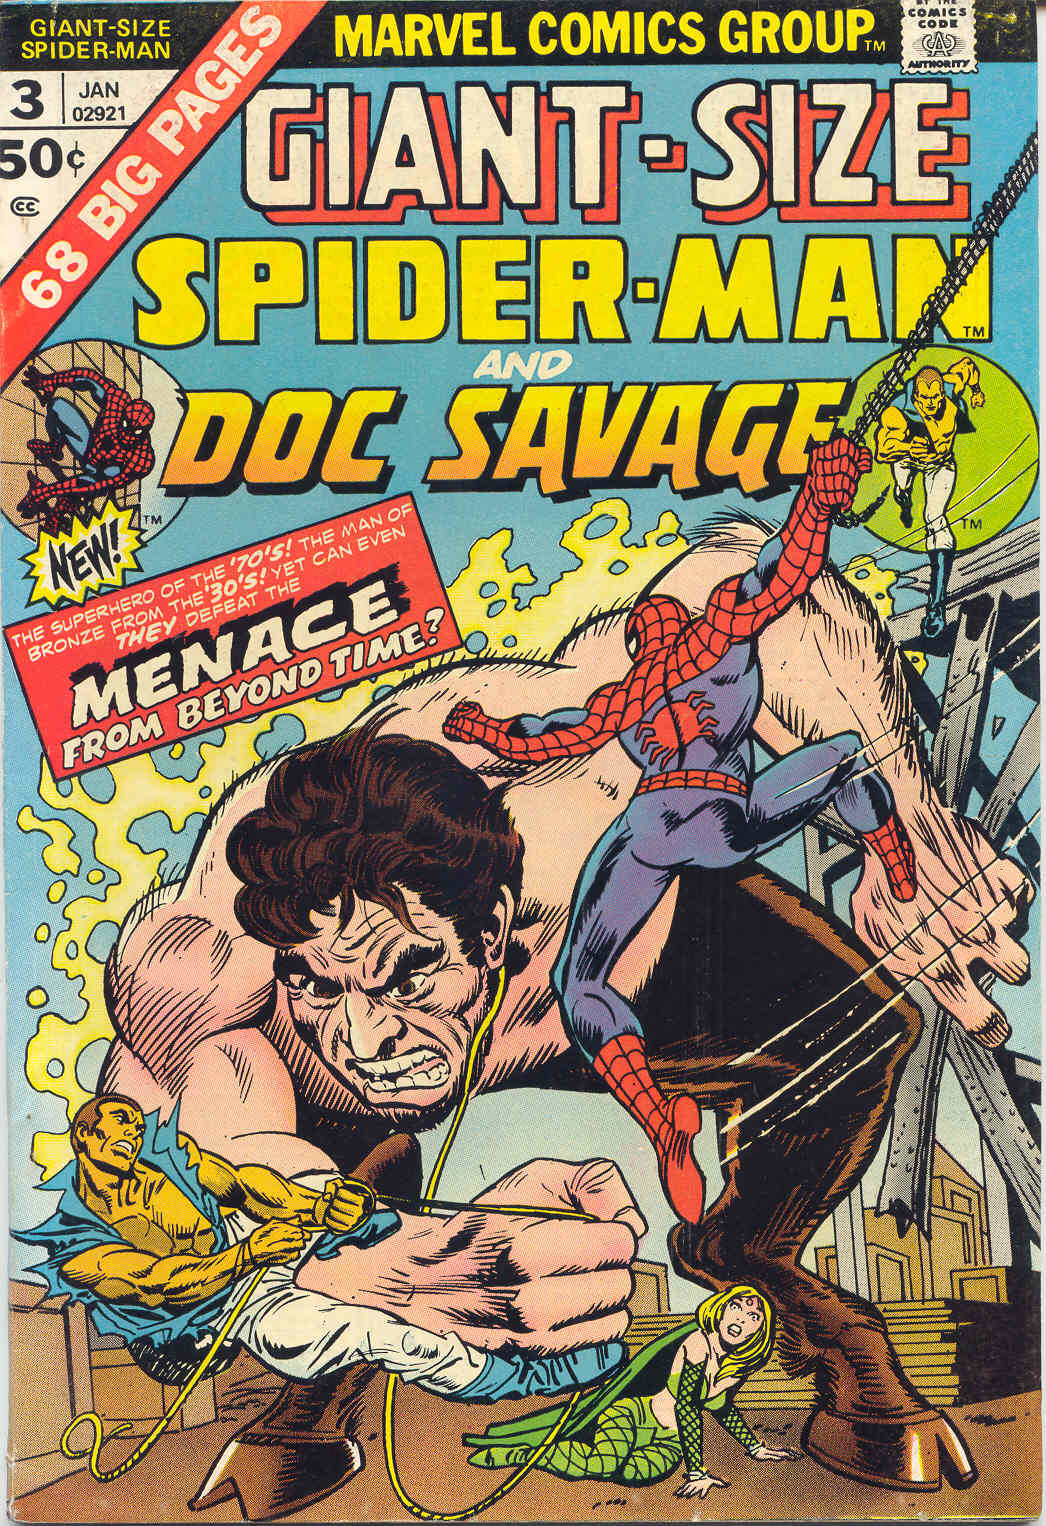 Giant-Size Spider-Man (1974) issue 3 - Page 1